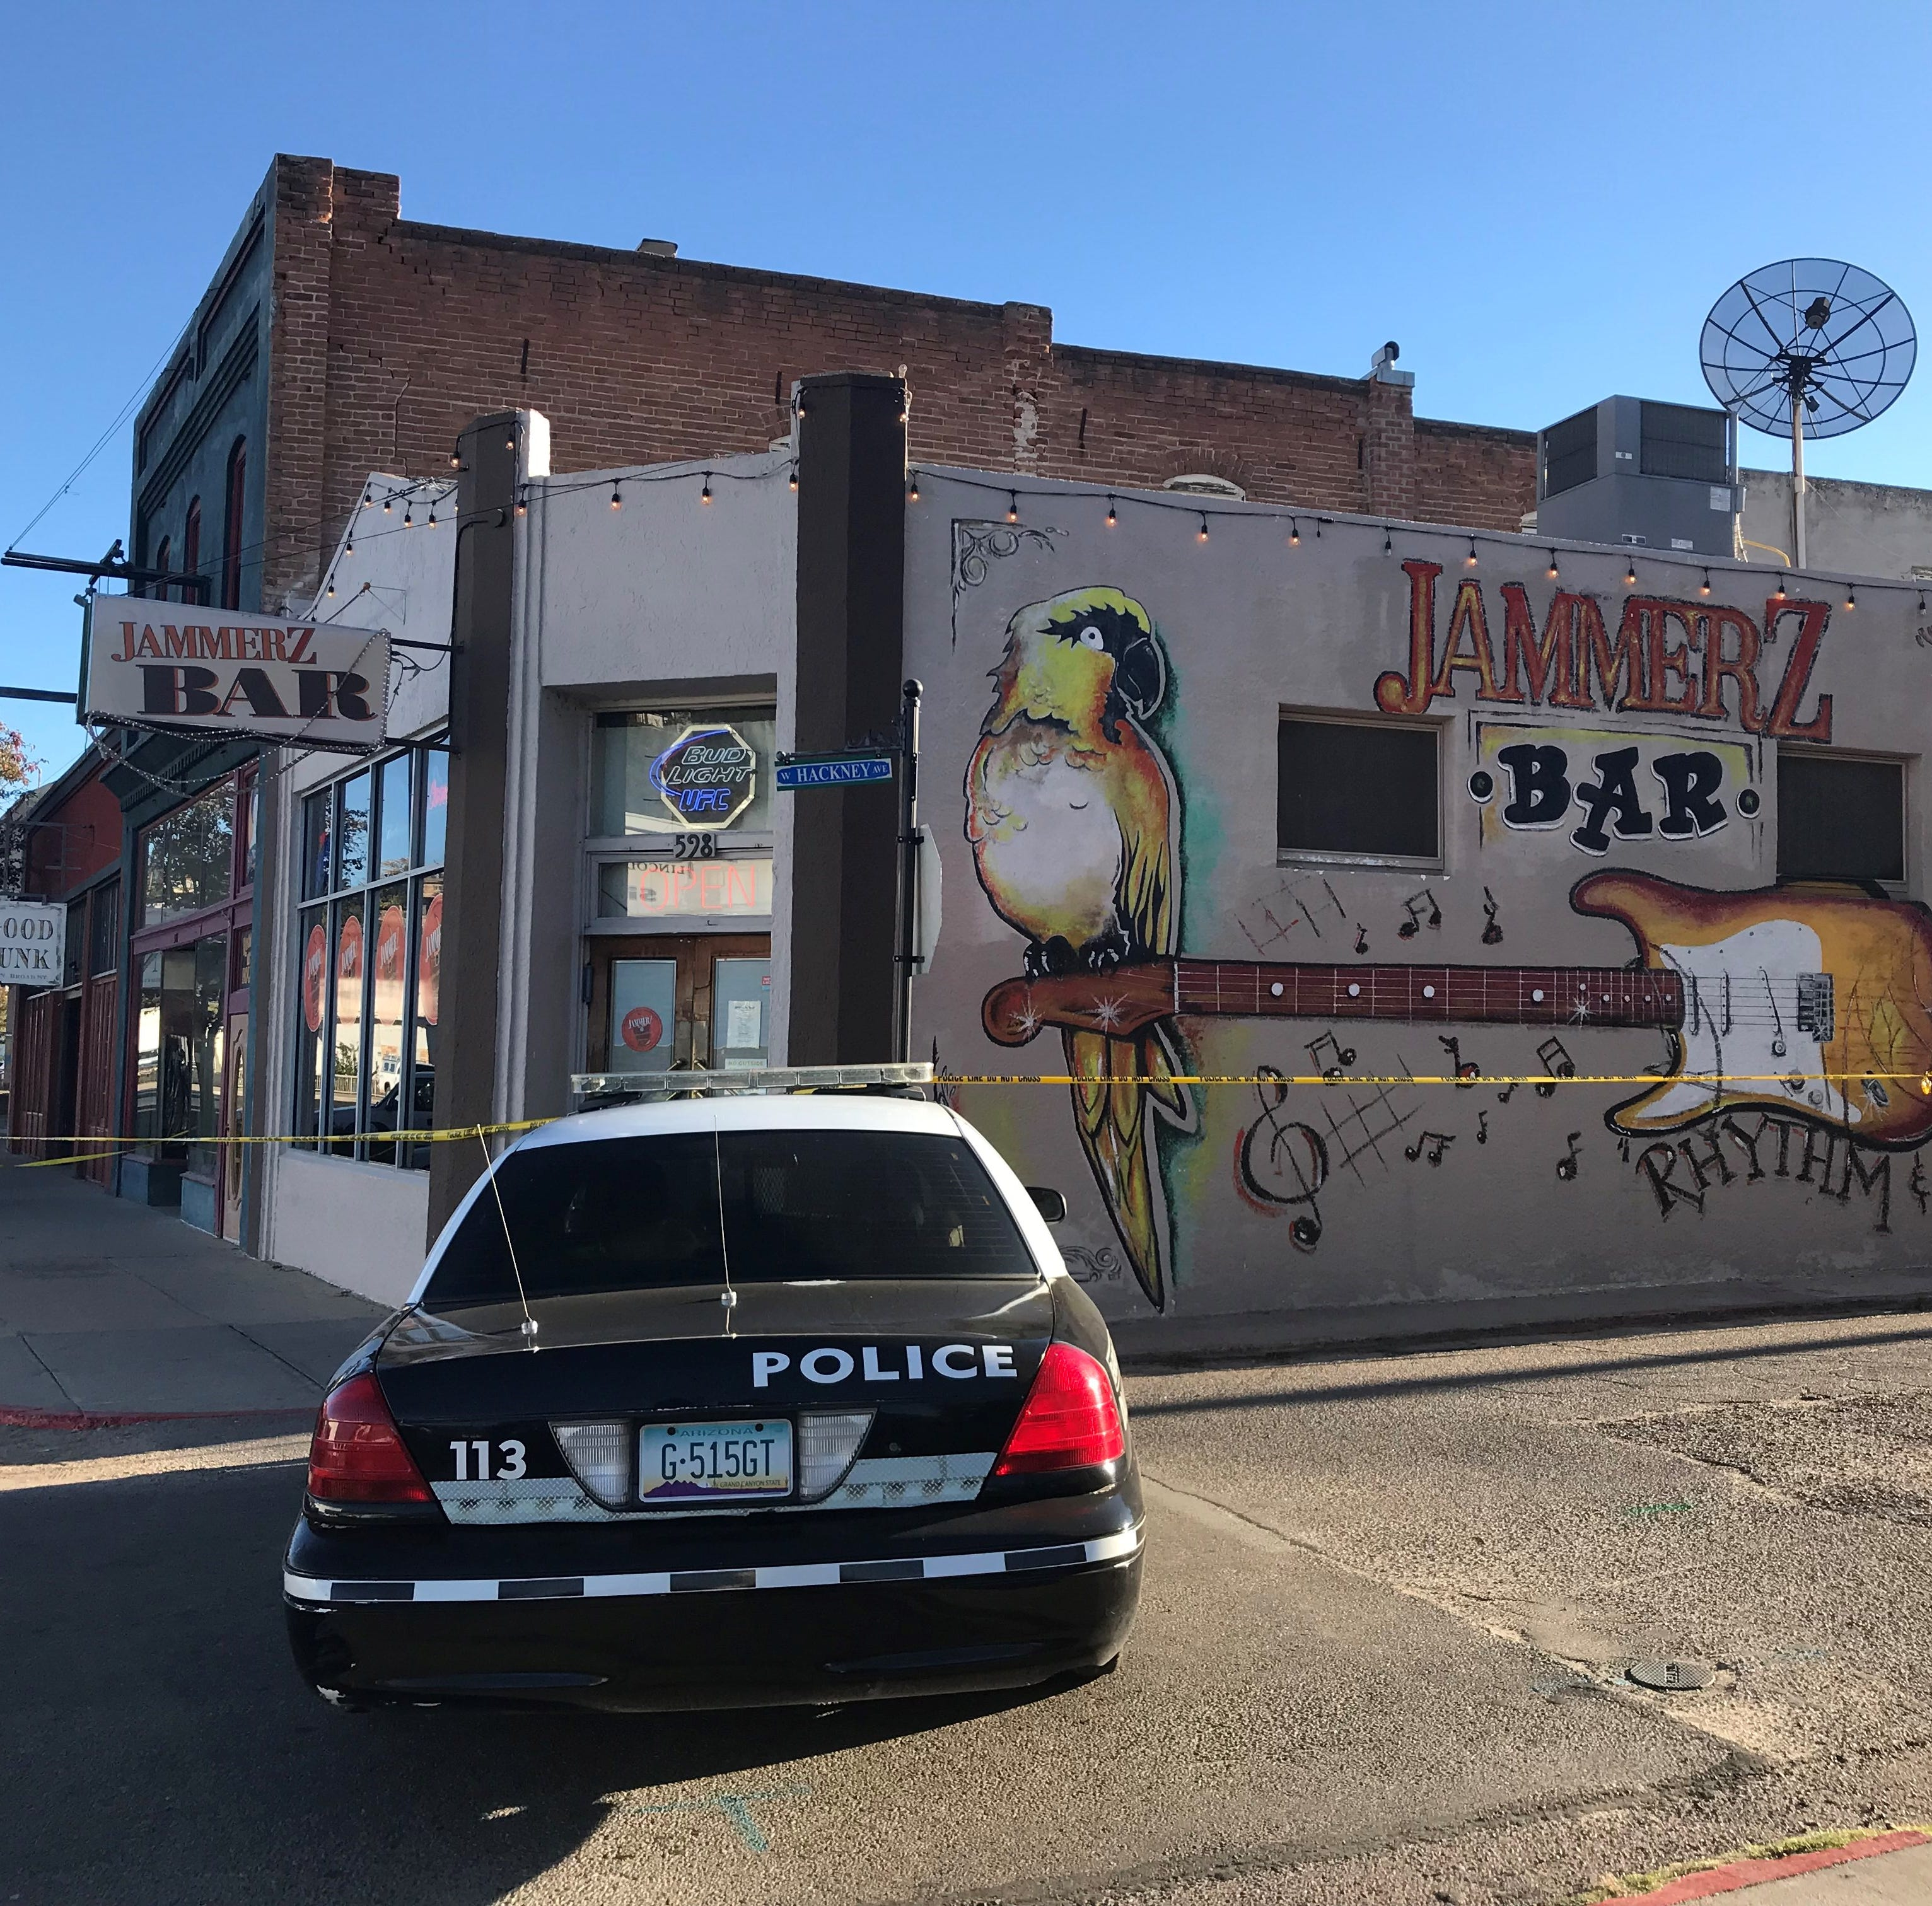 2 dead, 2 critically injured in shooting at Jammerz Bar in Globe